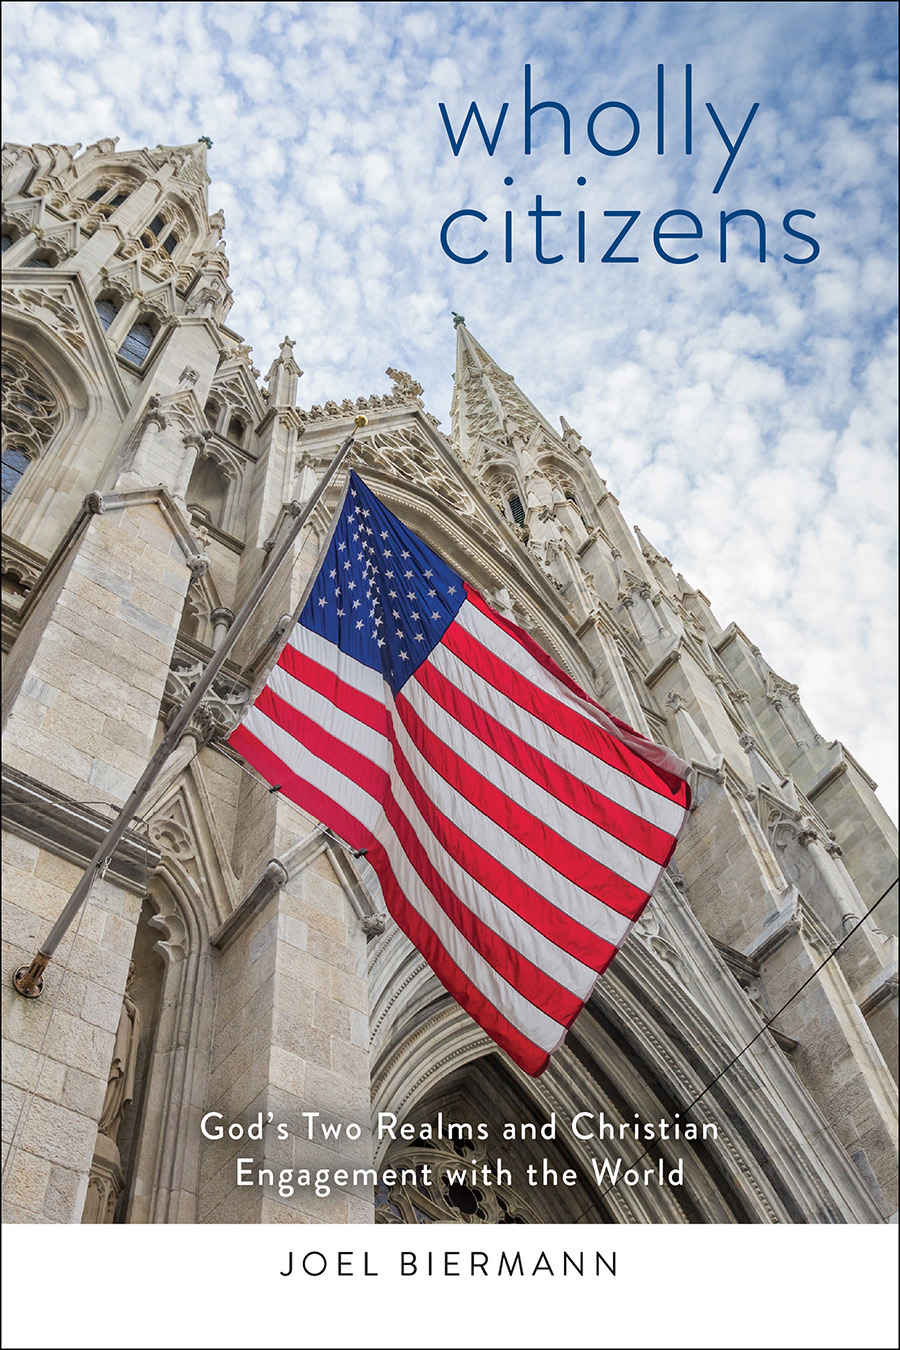 Wholly Citizens: an excerpt from Joel Biermann's new book